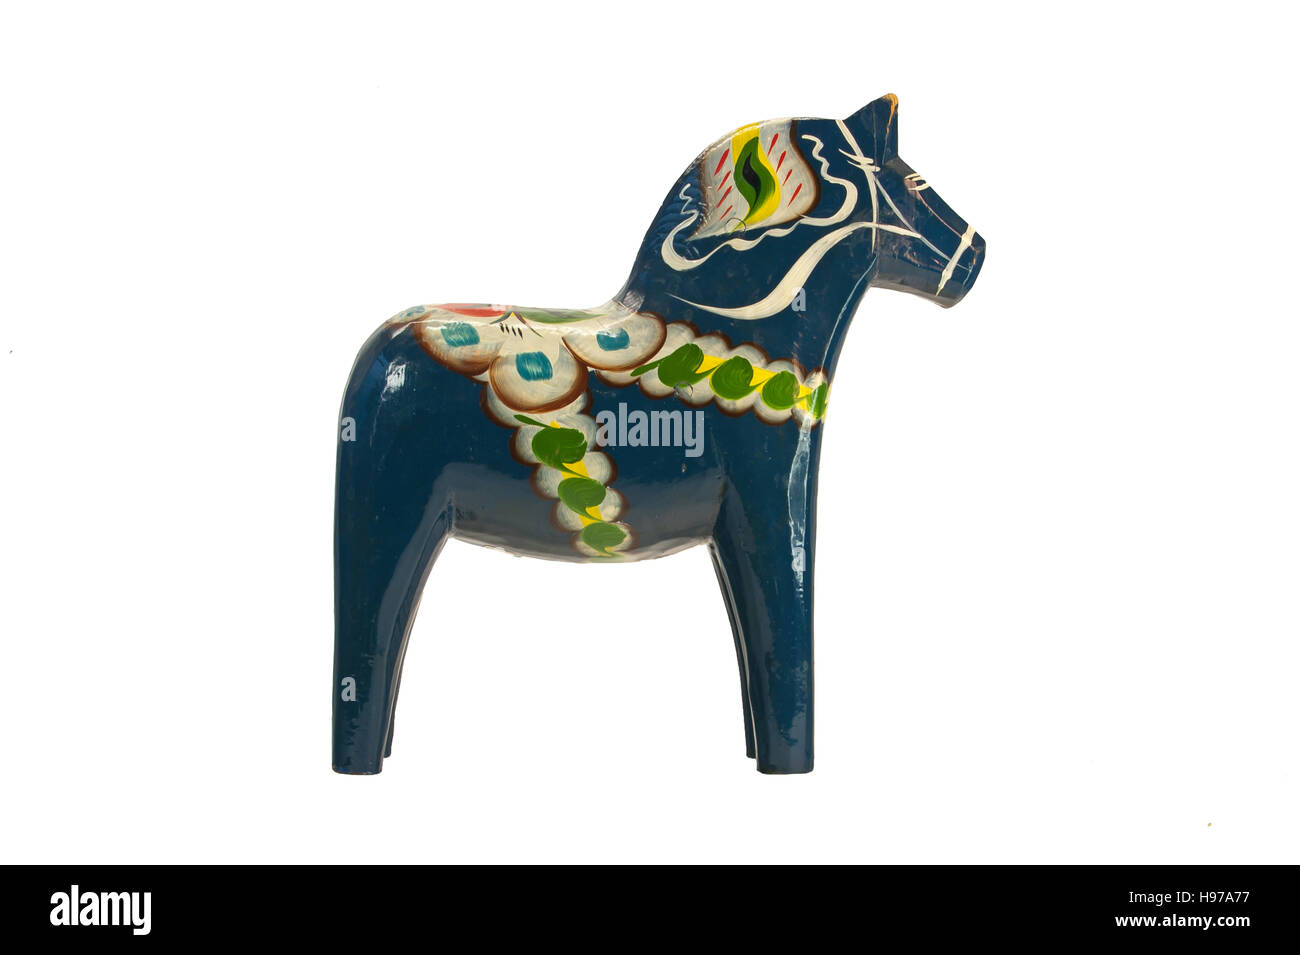 A more modern and blue Dala (Dalecarlian) Horse isolated on a white background. - Stock Image